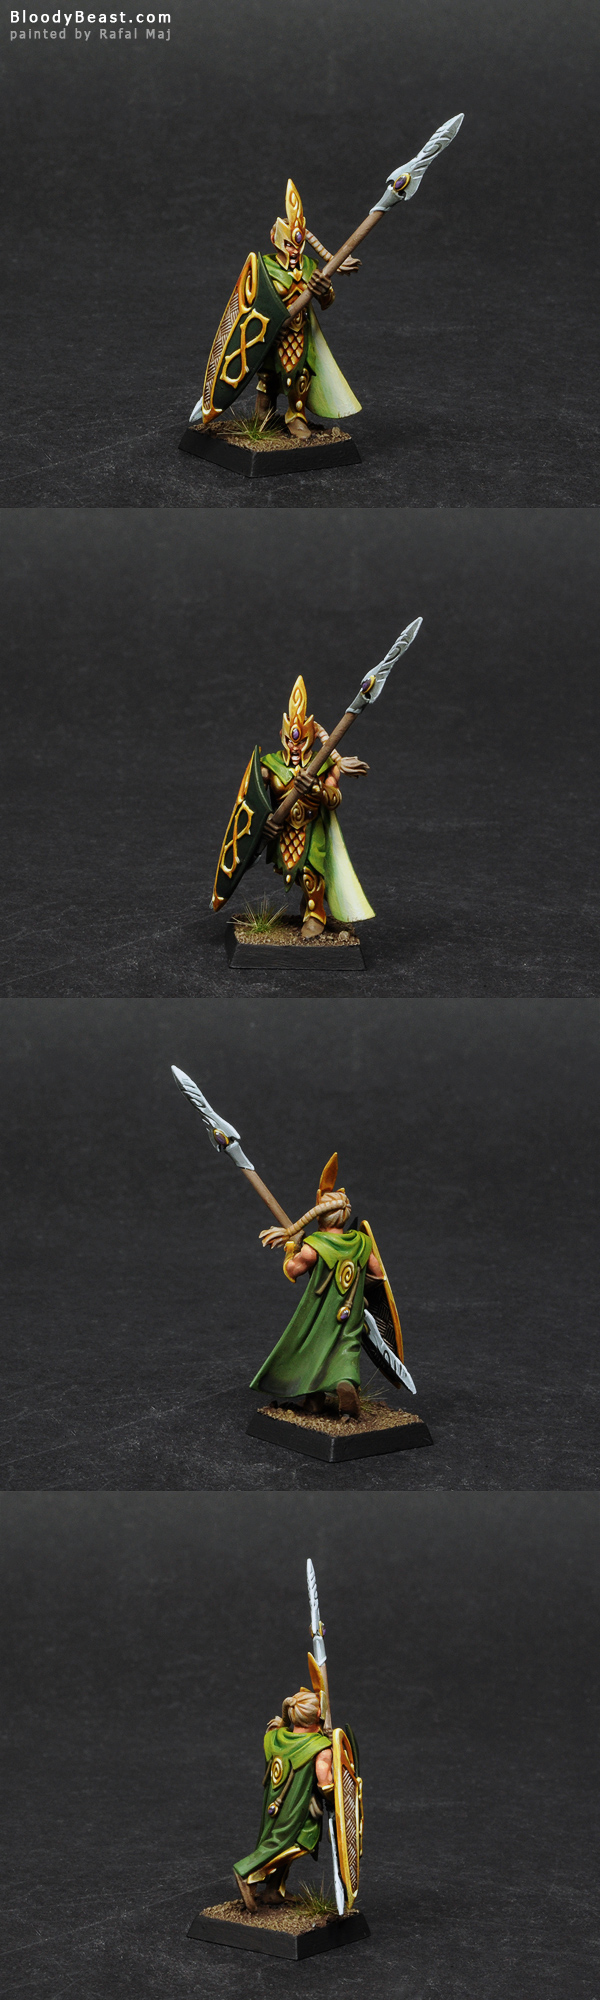 Wood Elf Eternal Guard painted by Rafal Maj (BloodyBeast.com)